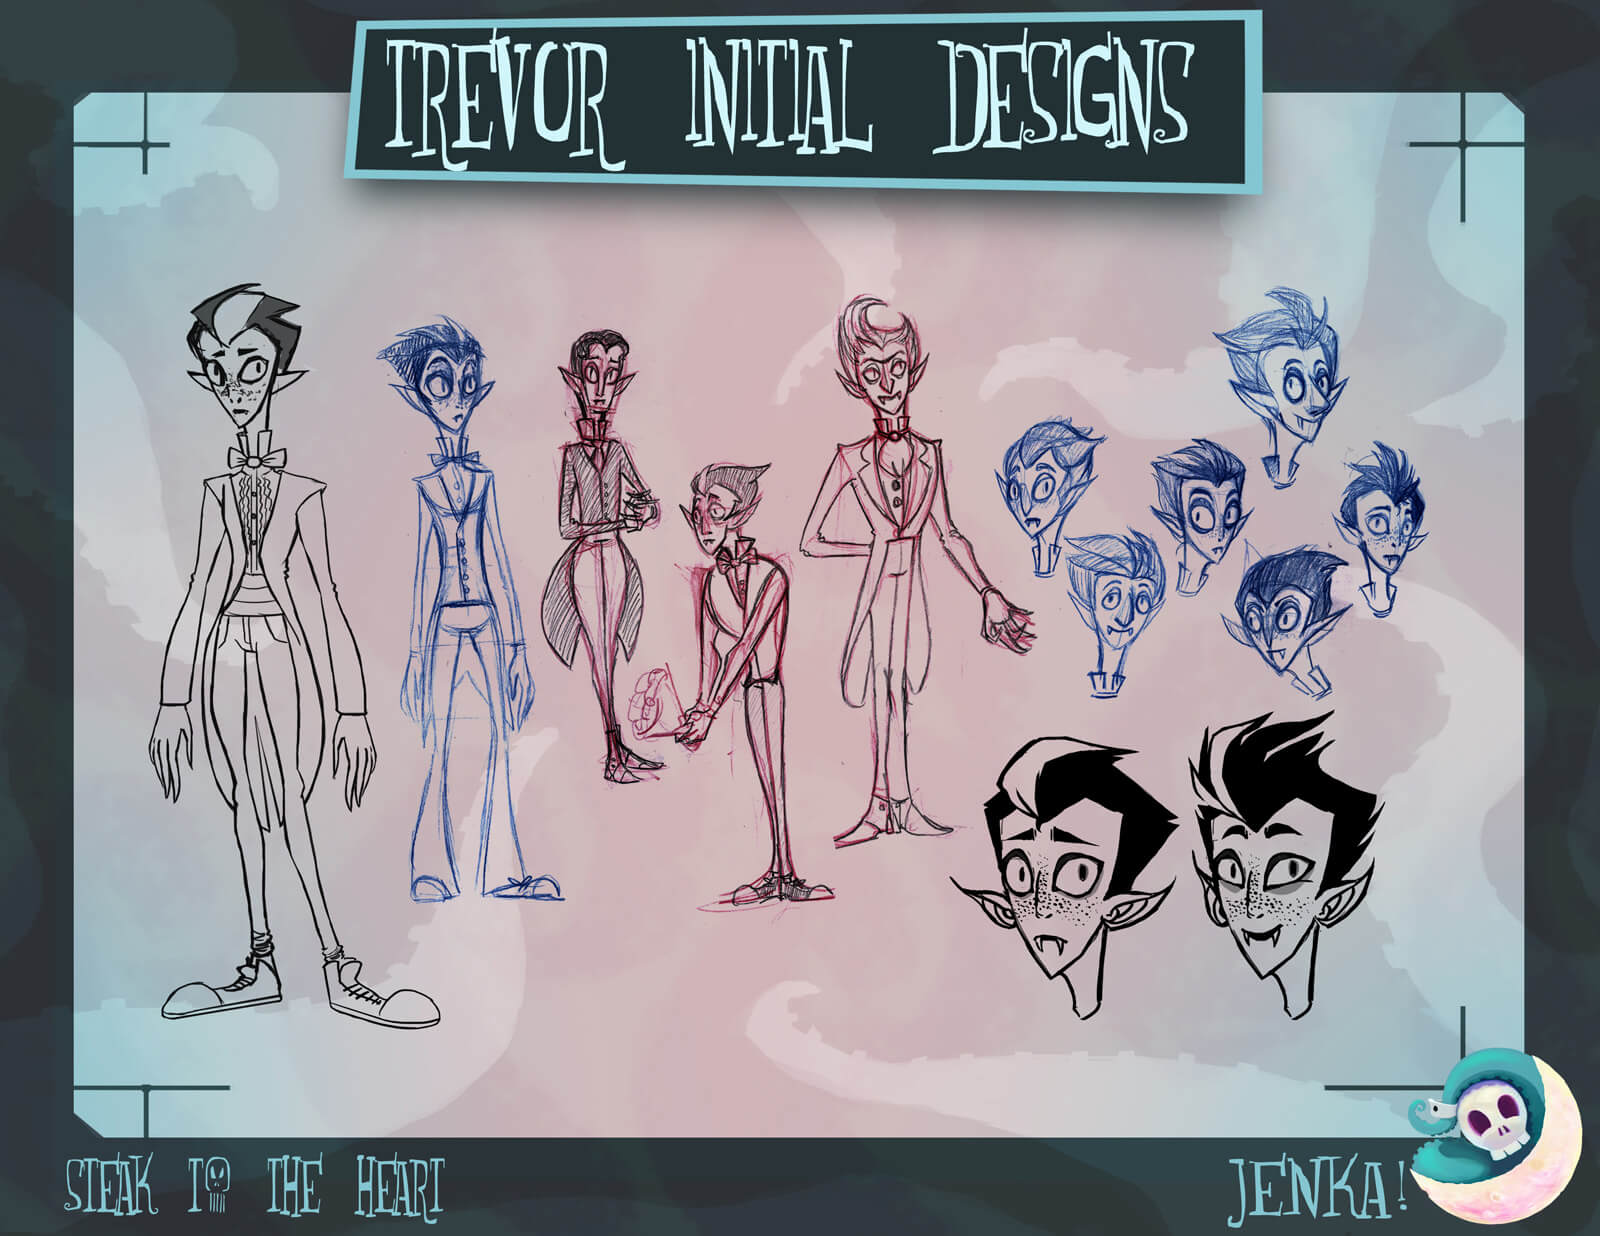 Sketches and drawings of Trevor the Vampire from the film Steak to the Heart in black and white poses